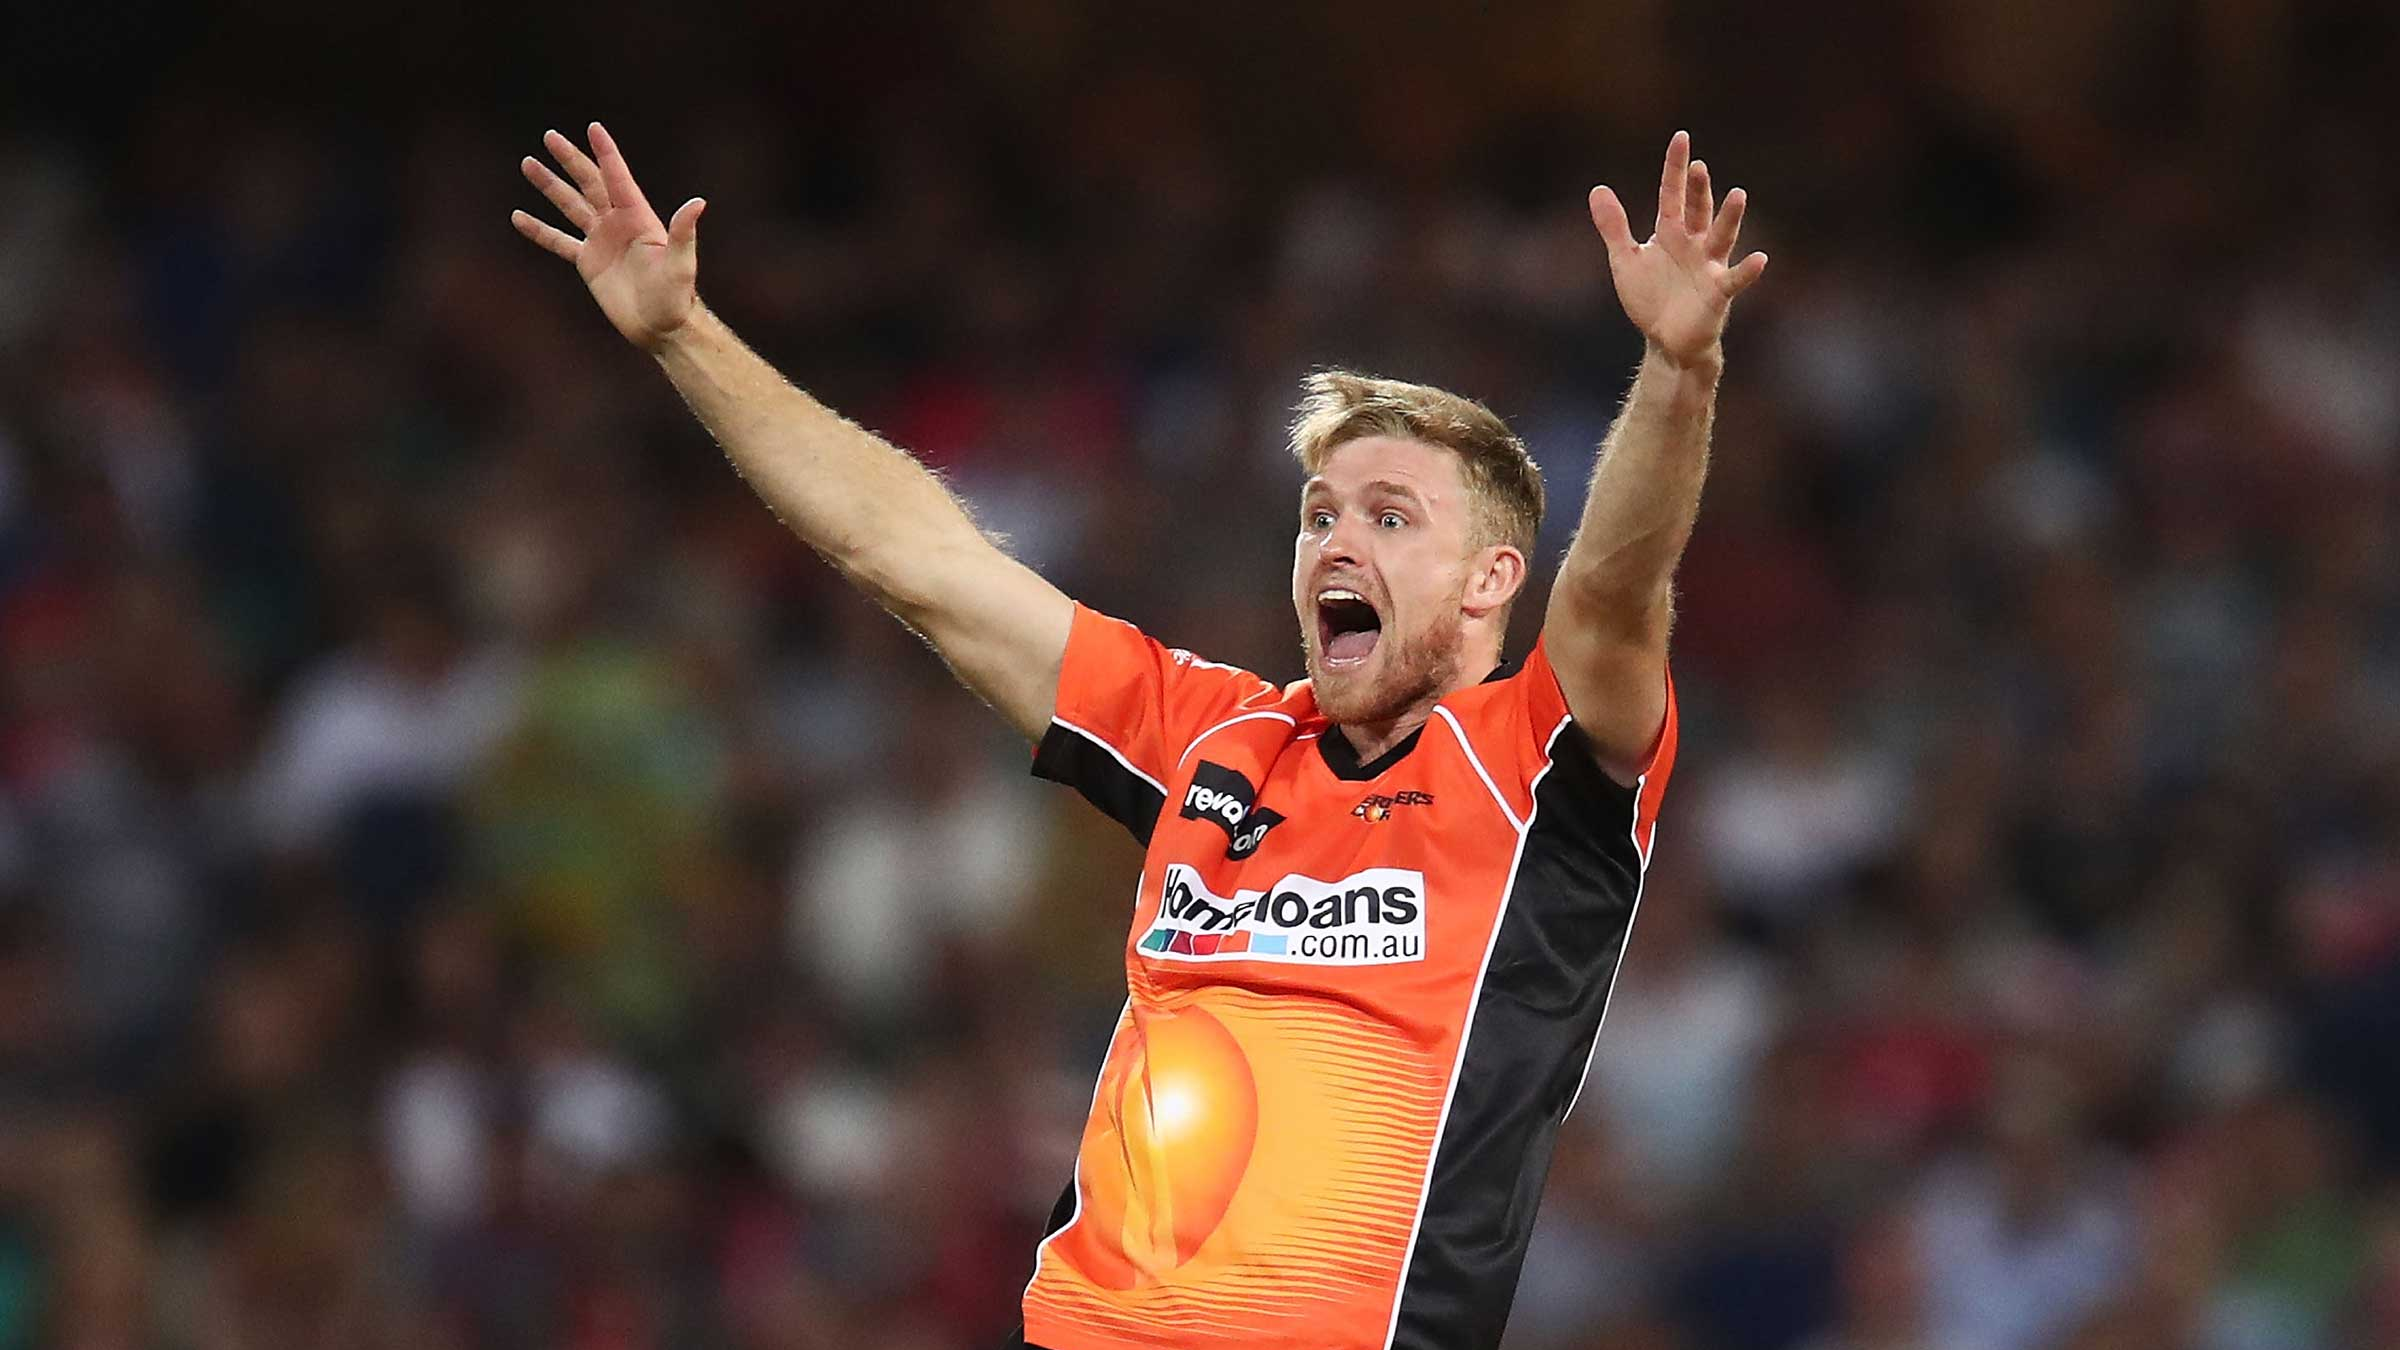 IPL 2018: England cricketer David Willey to join Chennai Super Kings